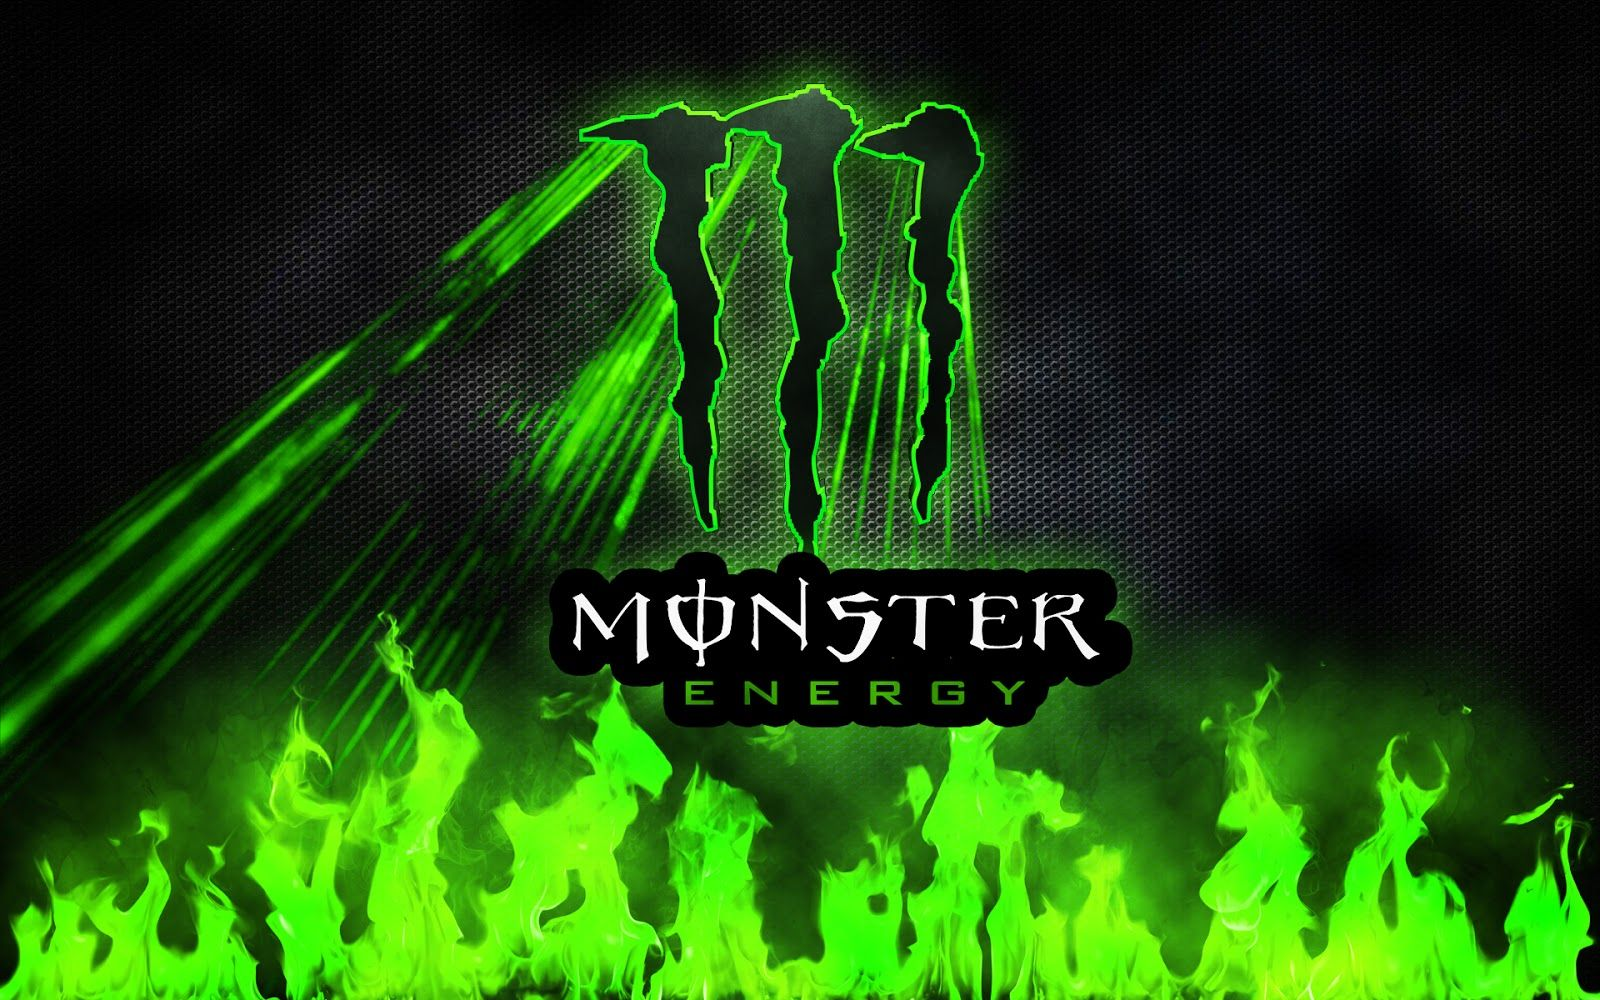 Monster Energy Wallpapers HD   Wallpaper Cave | Images Wallpapers |  Pinterest | Wallpaper, Monsters And Hd Wallpaper